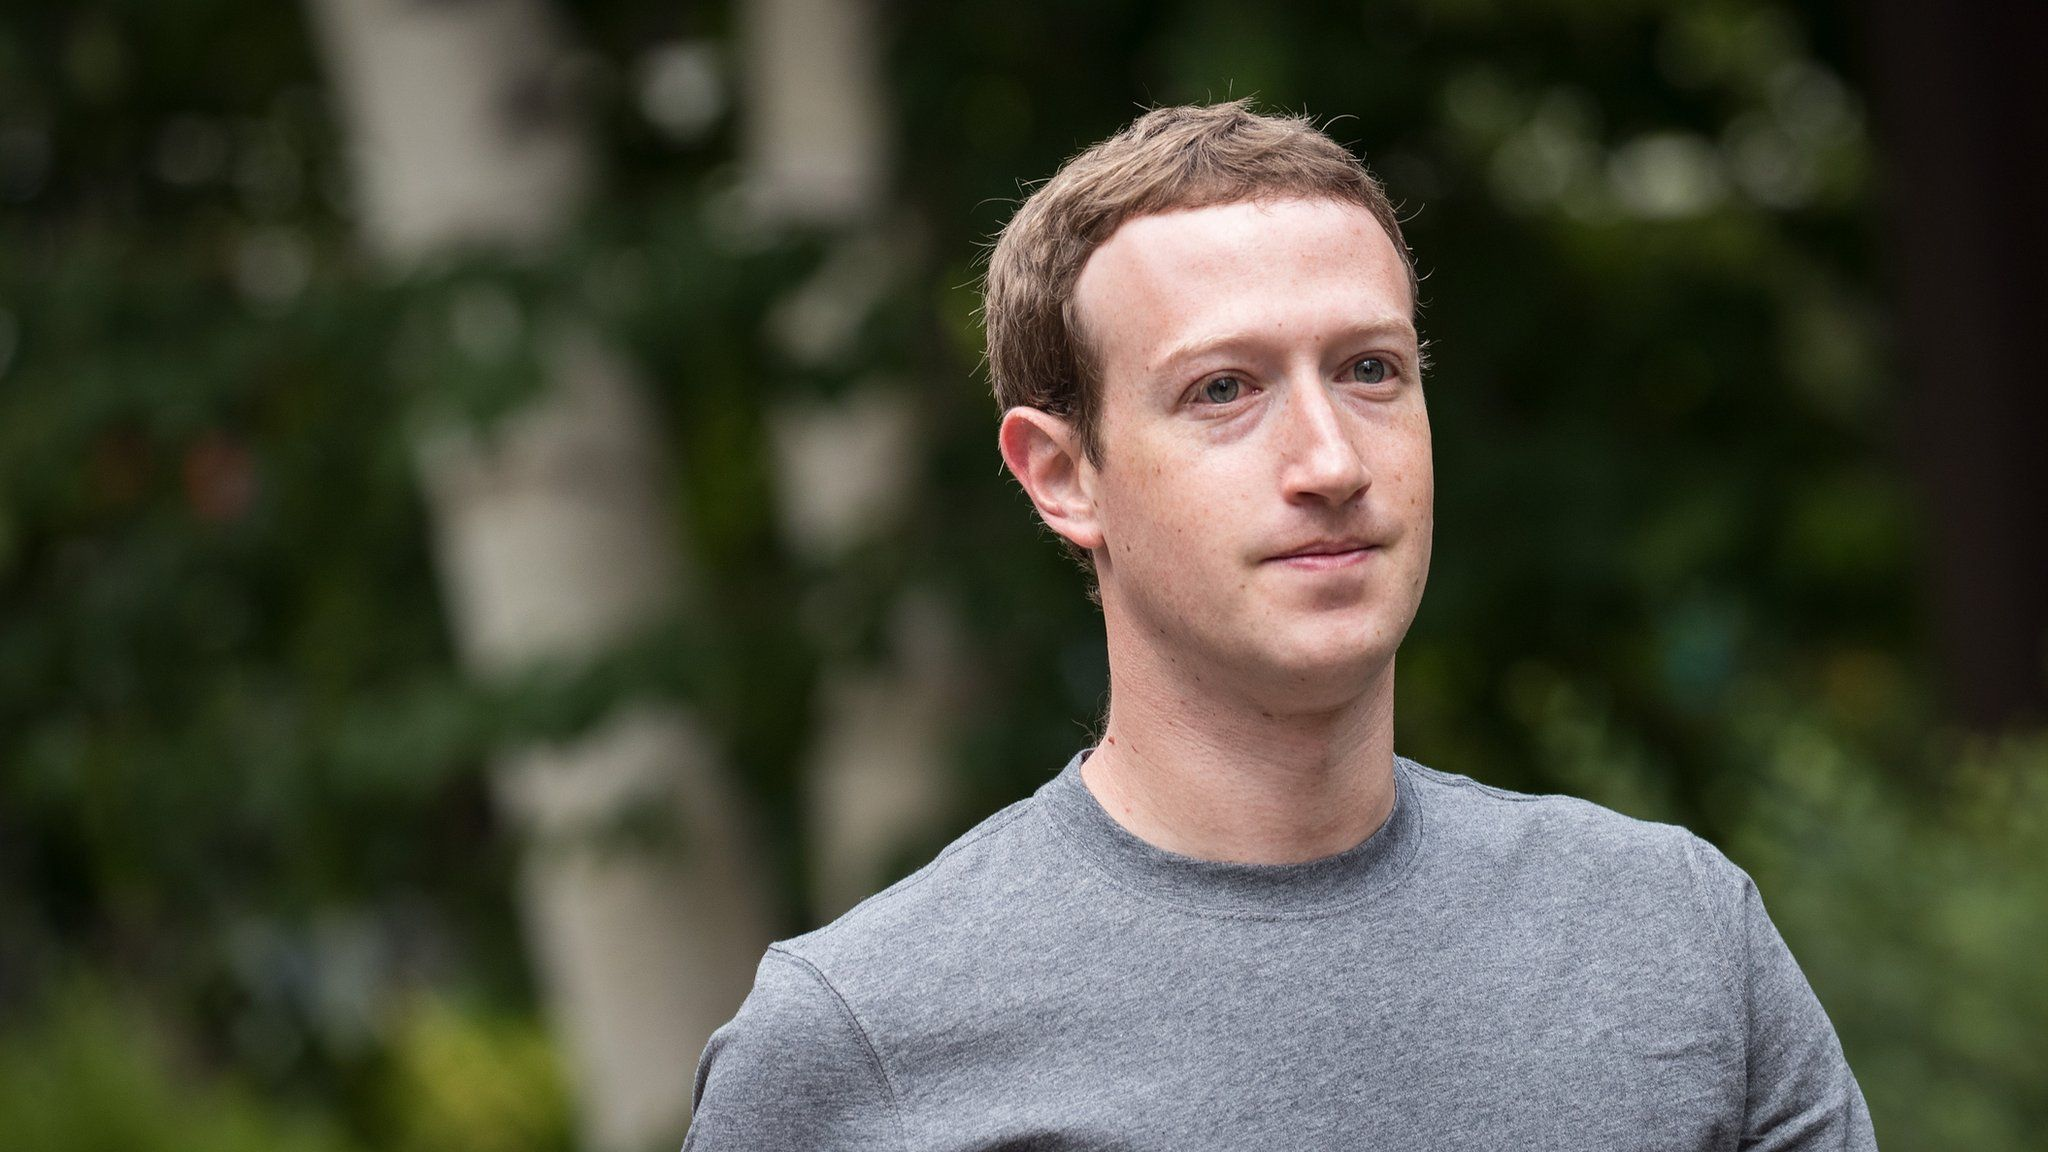 Facebook founder mark zuckerberg has dismissed comments made by